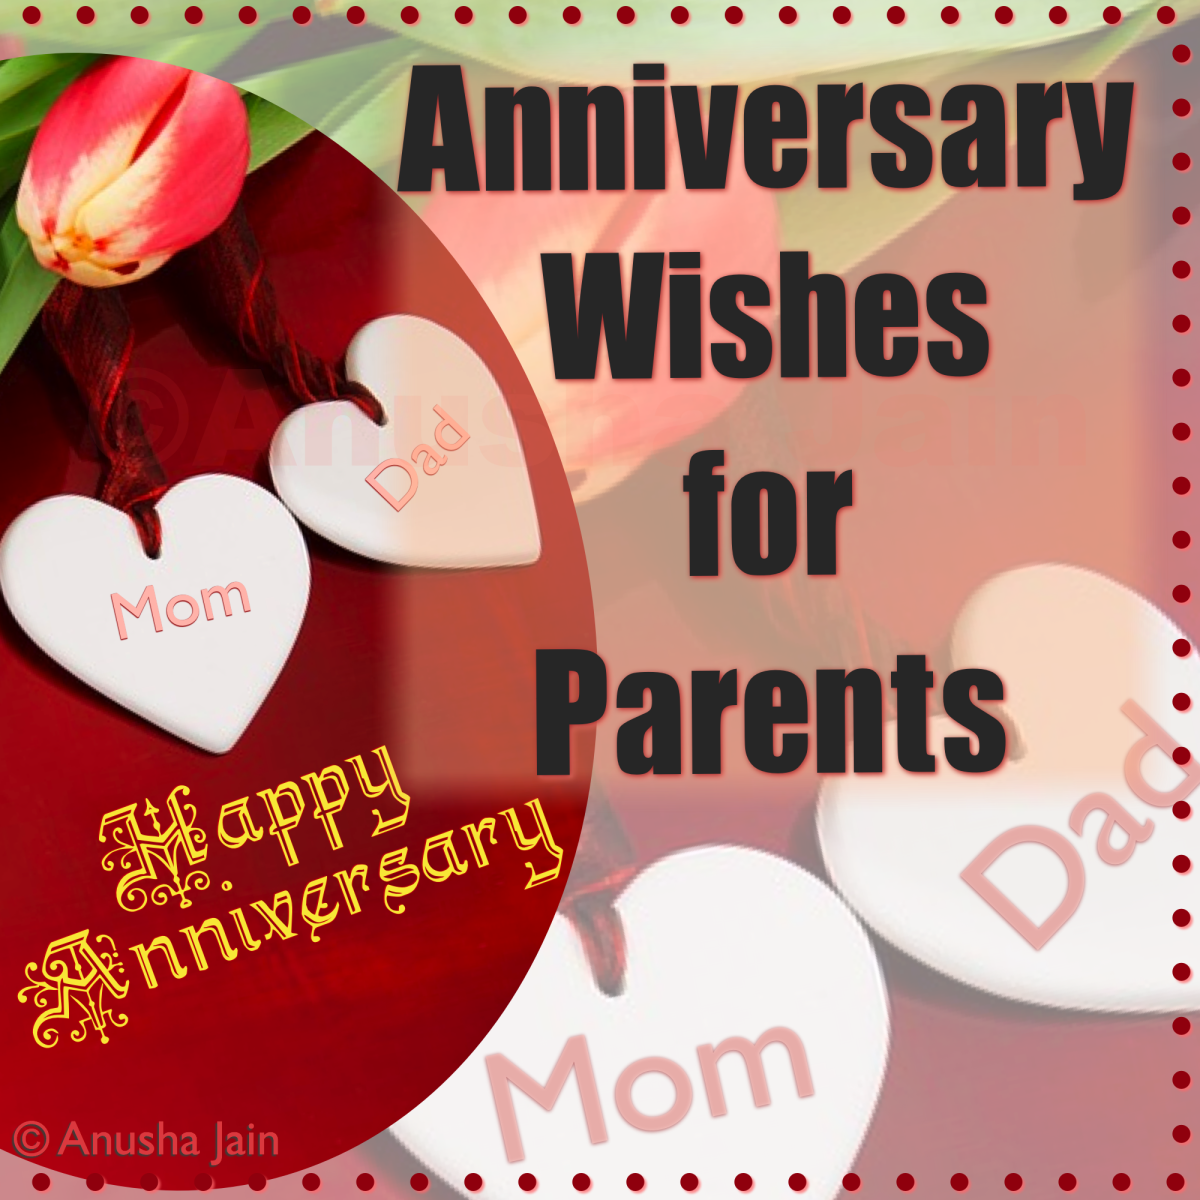 Happy Anniversary Mom Dad Poems And Anniversary Quotes For